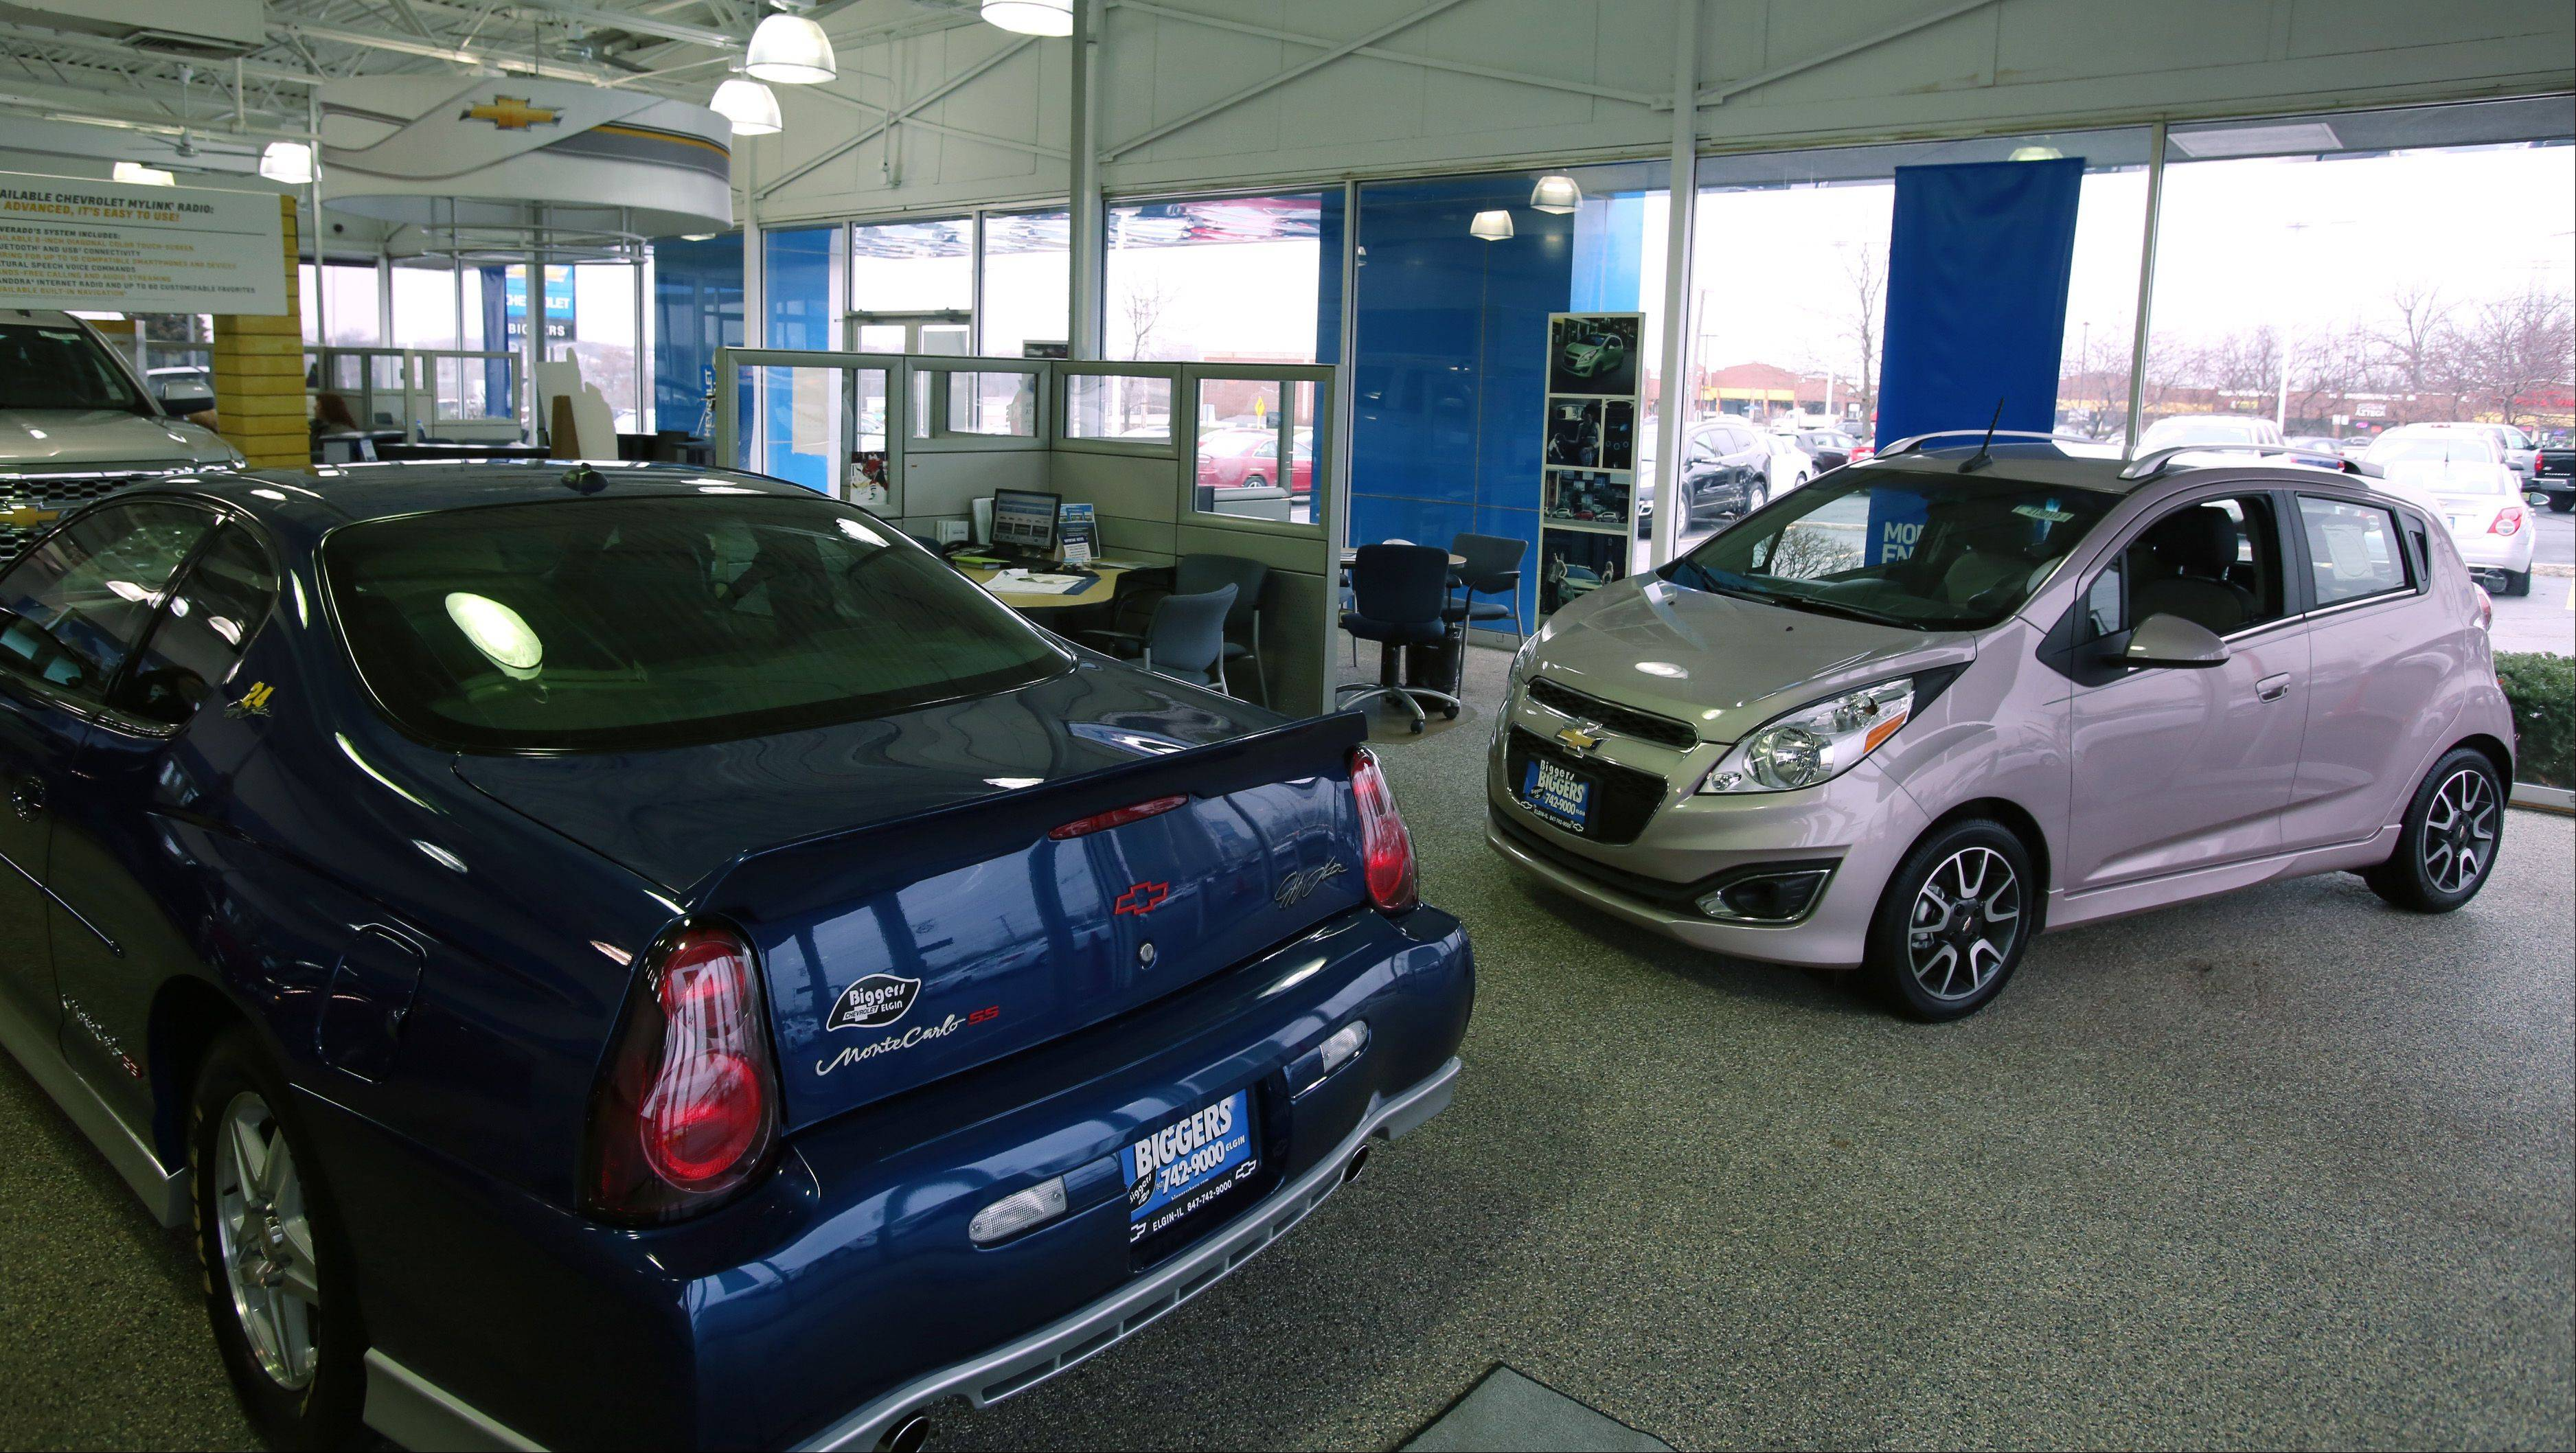 A showroom view of Biggers Chevrolet in Elgin.